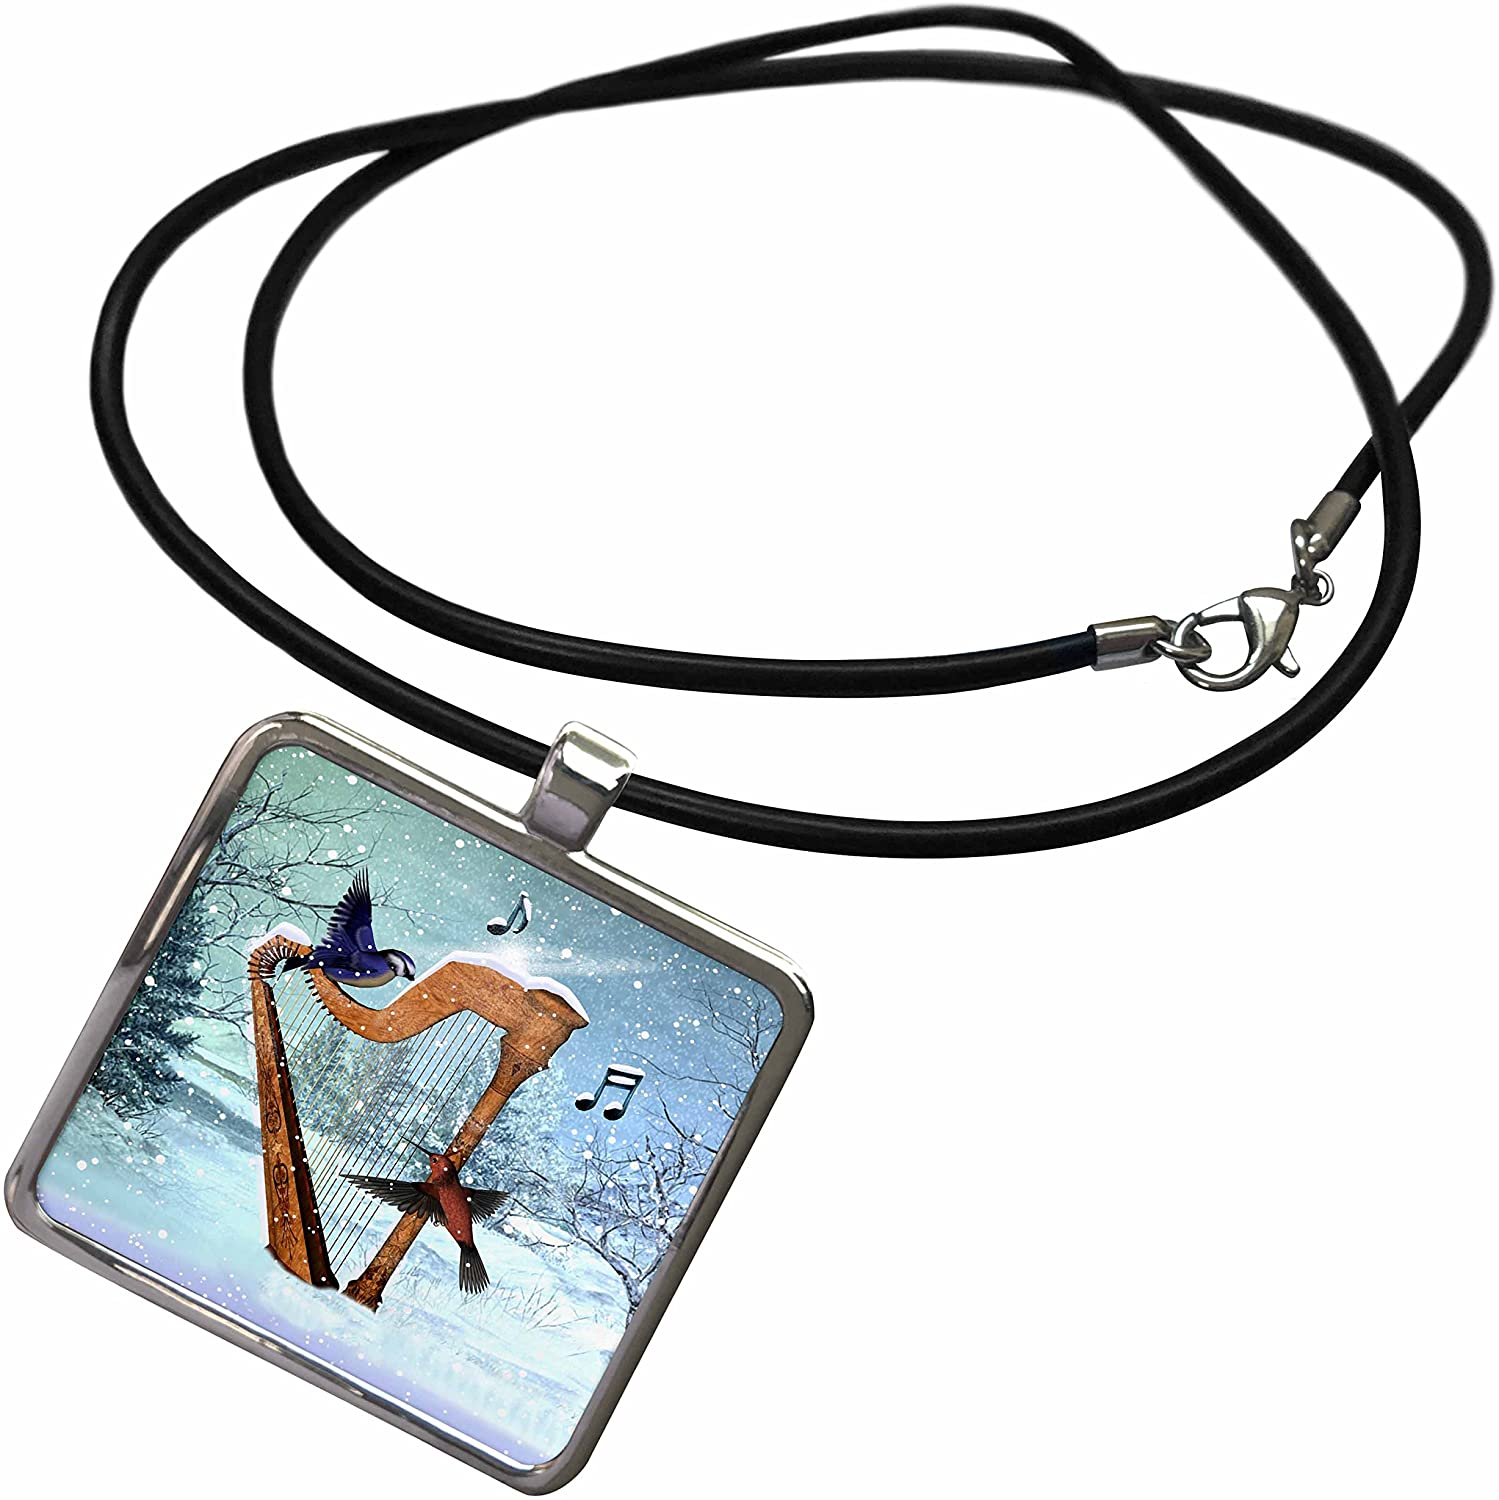 3dRose Renderly Yours Winter and Christmas - Bluebird and Hummingbird with A Harp in The Snow and Musical Notes - Necklace with Rectangle Pendant (ncl_97860)